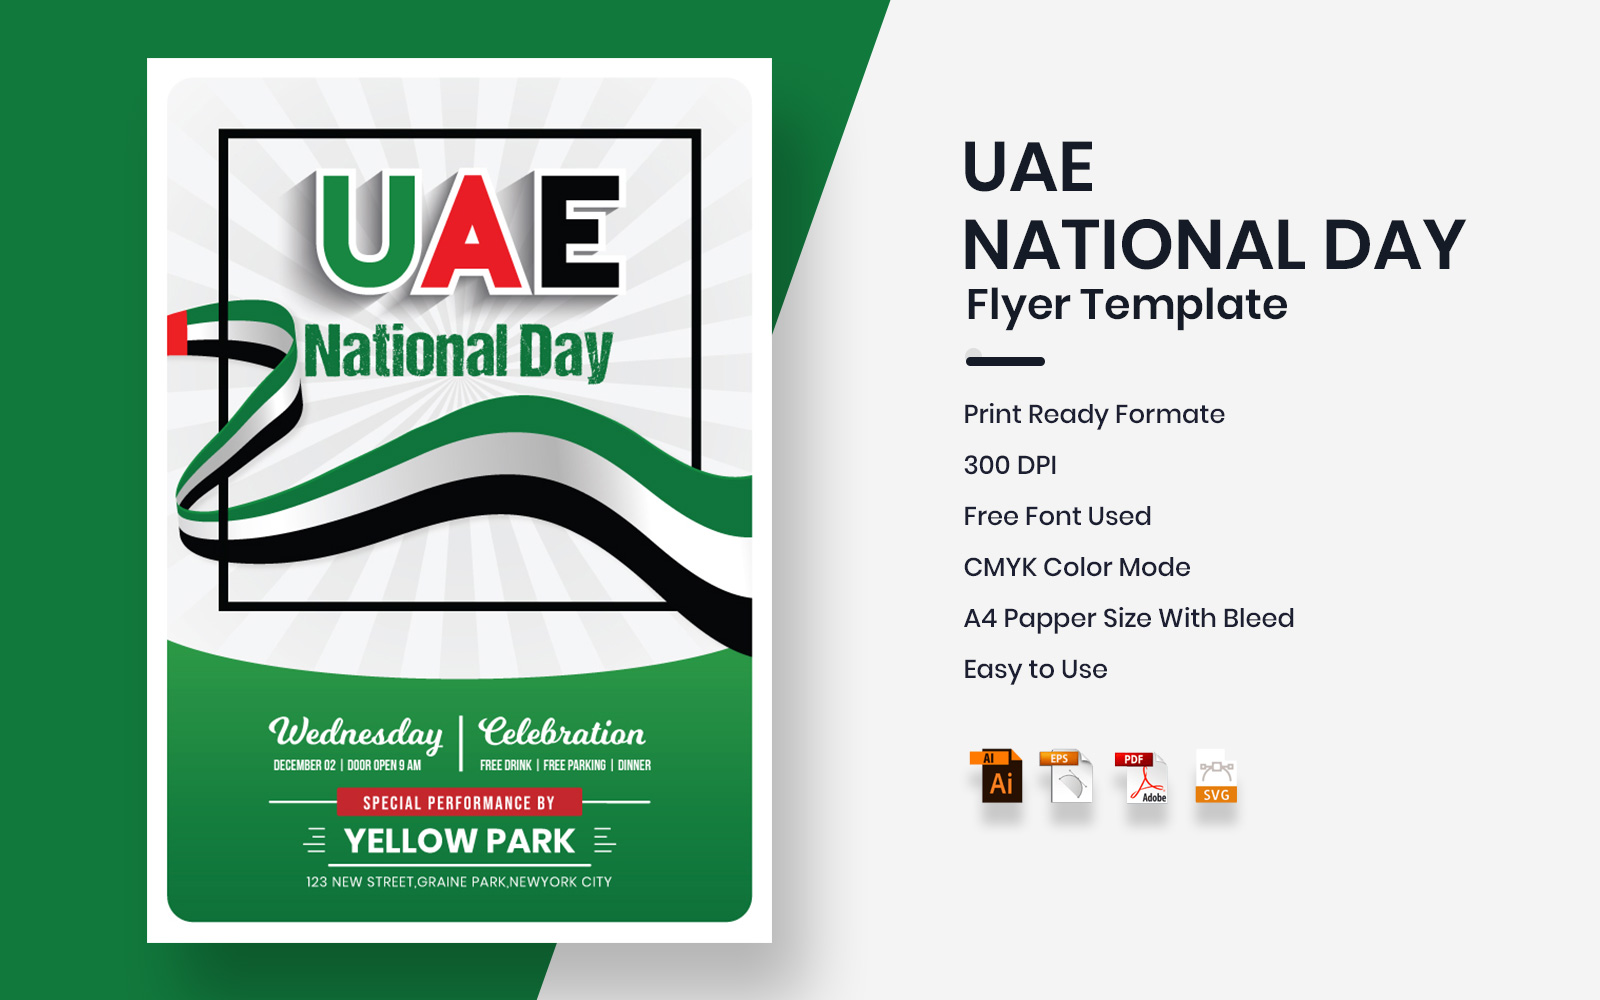 UAE National Day Corporate identity-mall #122876